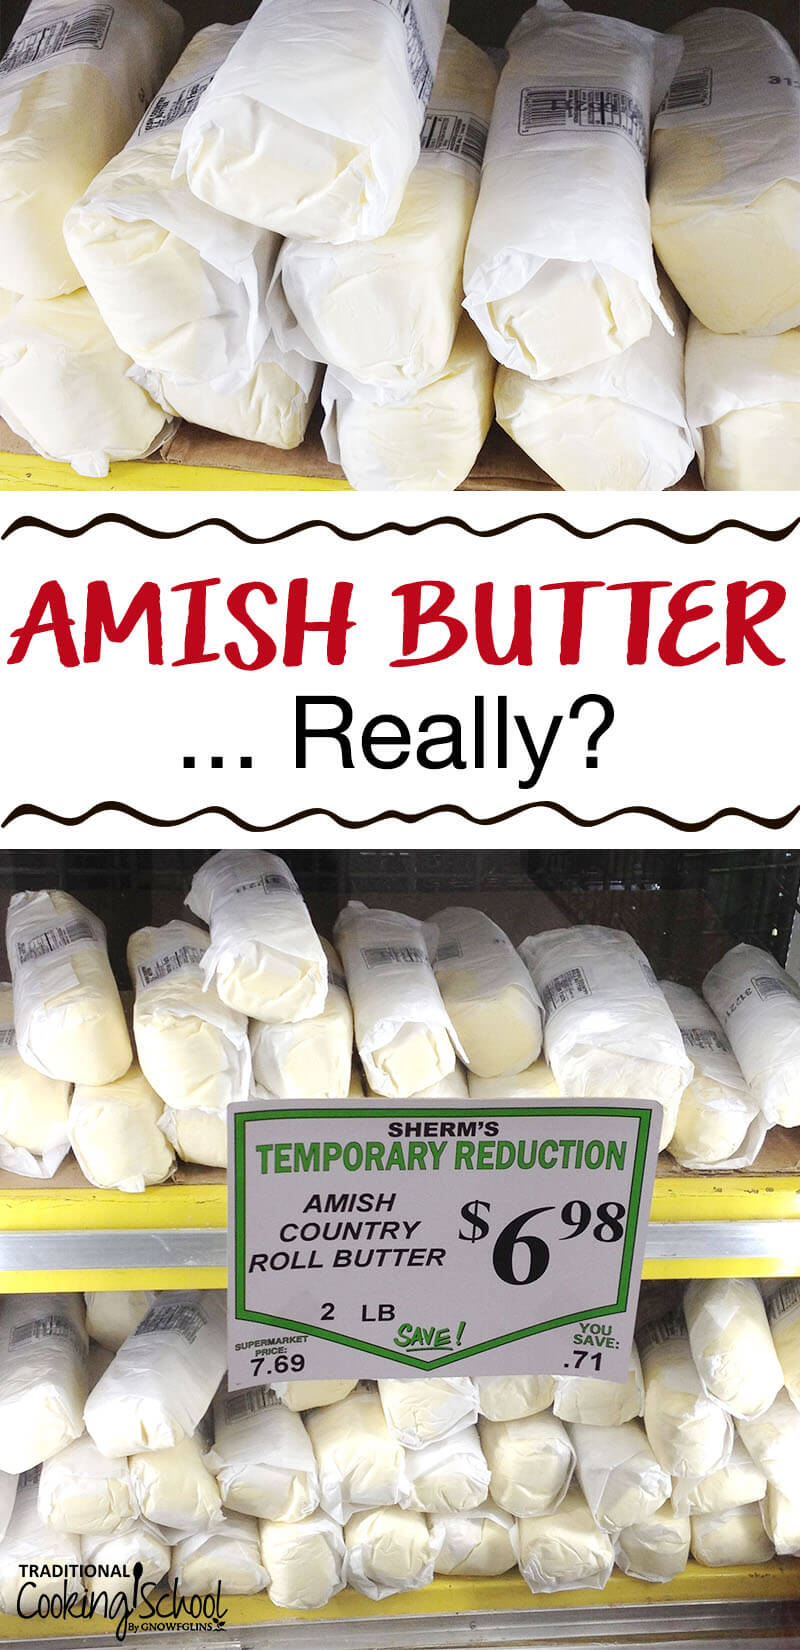 Amish Butter: Really?